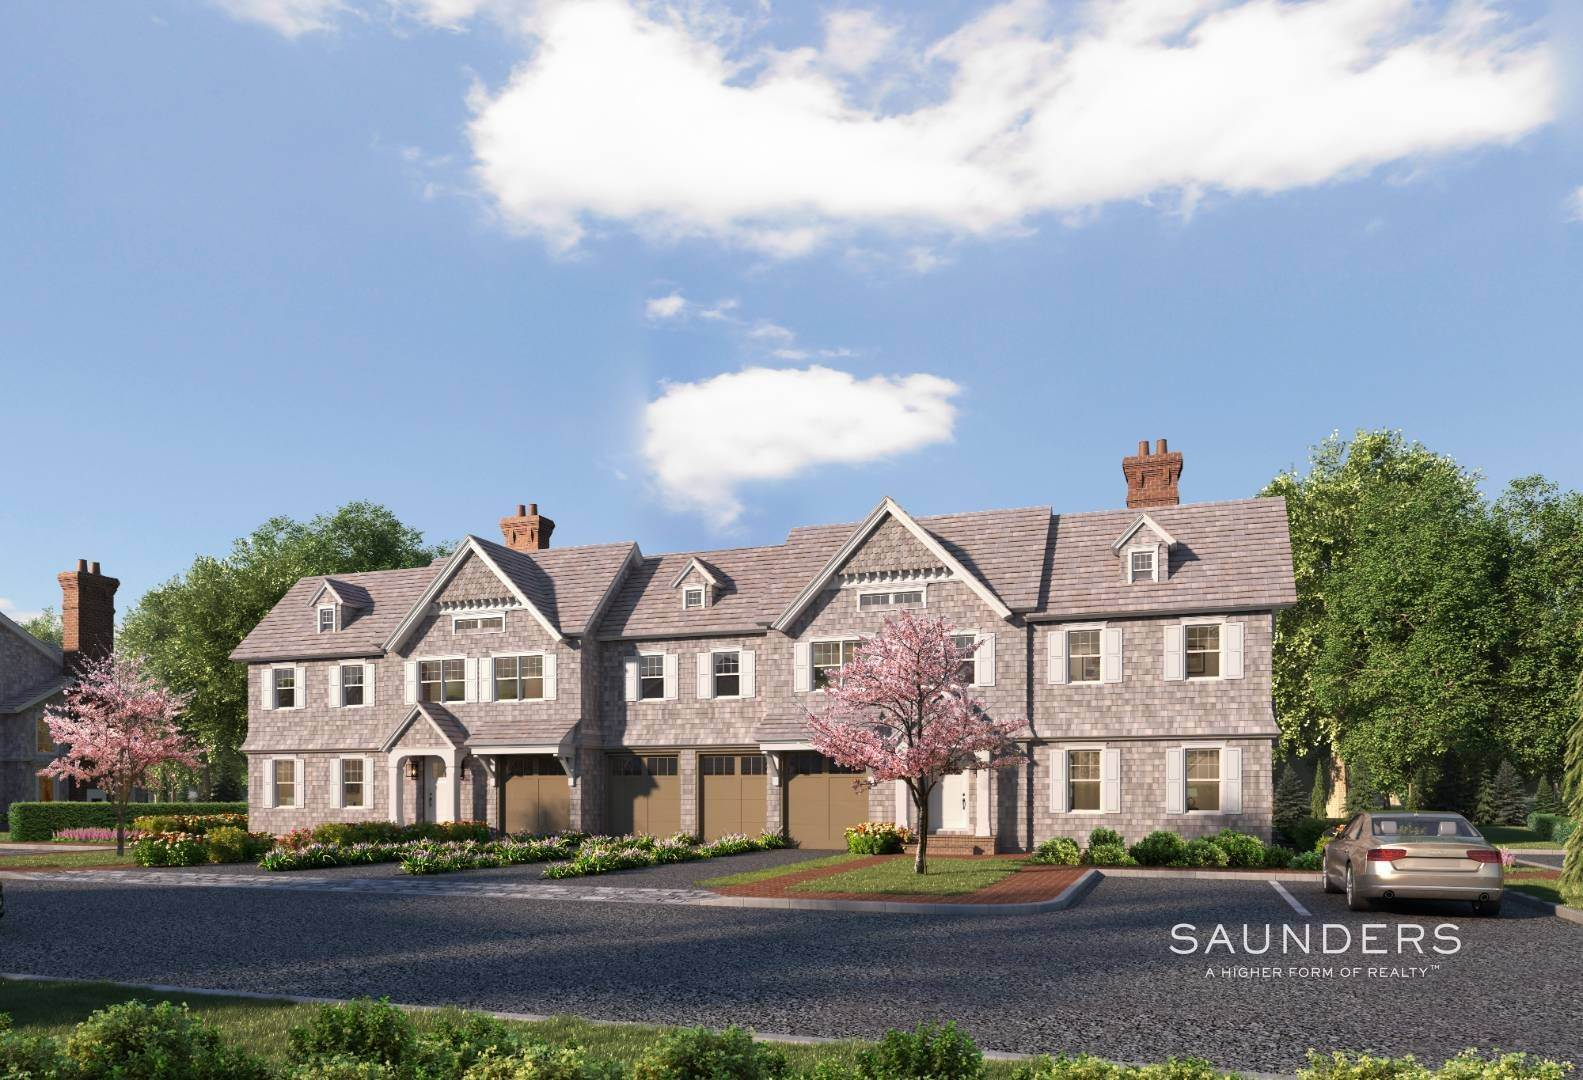 townhouses at The Latch At Southampton Village 101 Hill Street, #16c1, Southampton, Southampton Town, NY 11968